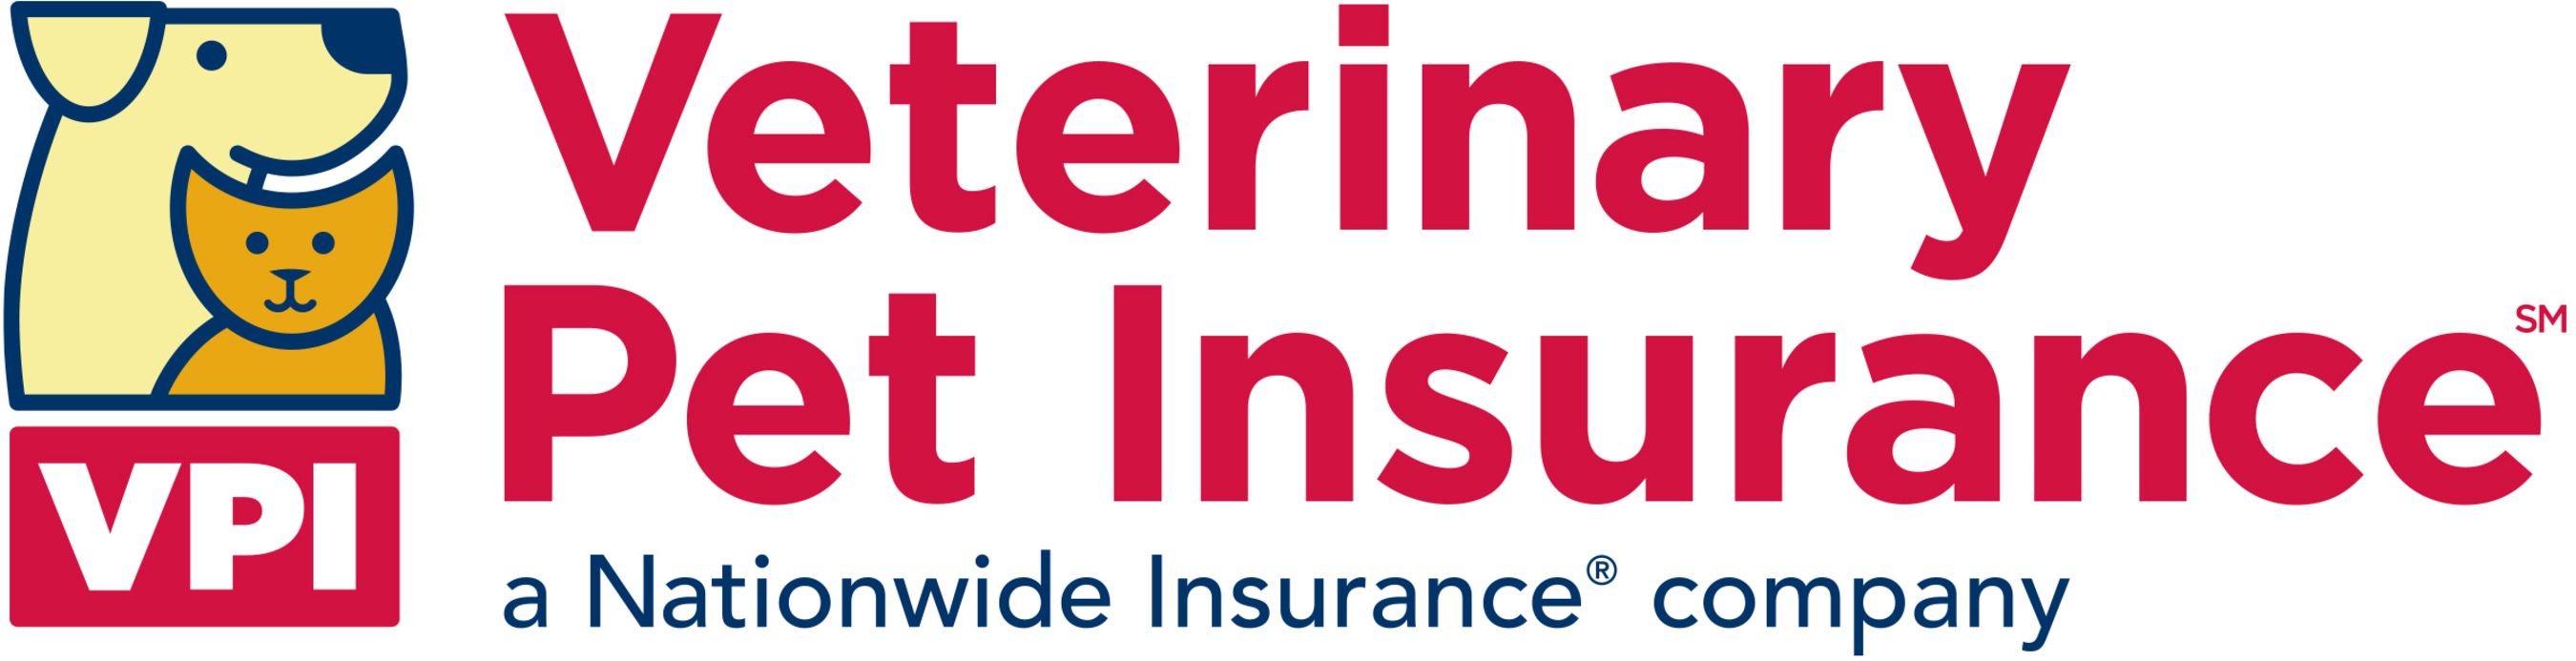 With more than 500,000 pets insured nationwide, Veterinary Pet Insurance is the first and largest pet health insurance(http://www.petinsurance.com/plans-and-coverage/dog-insurance.aspx)